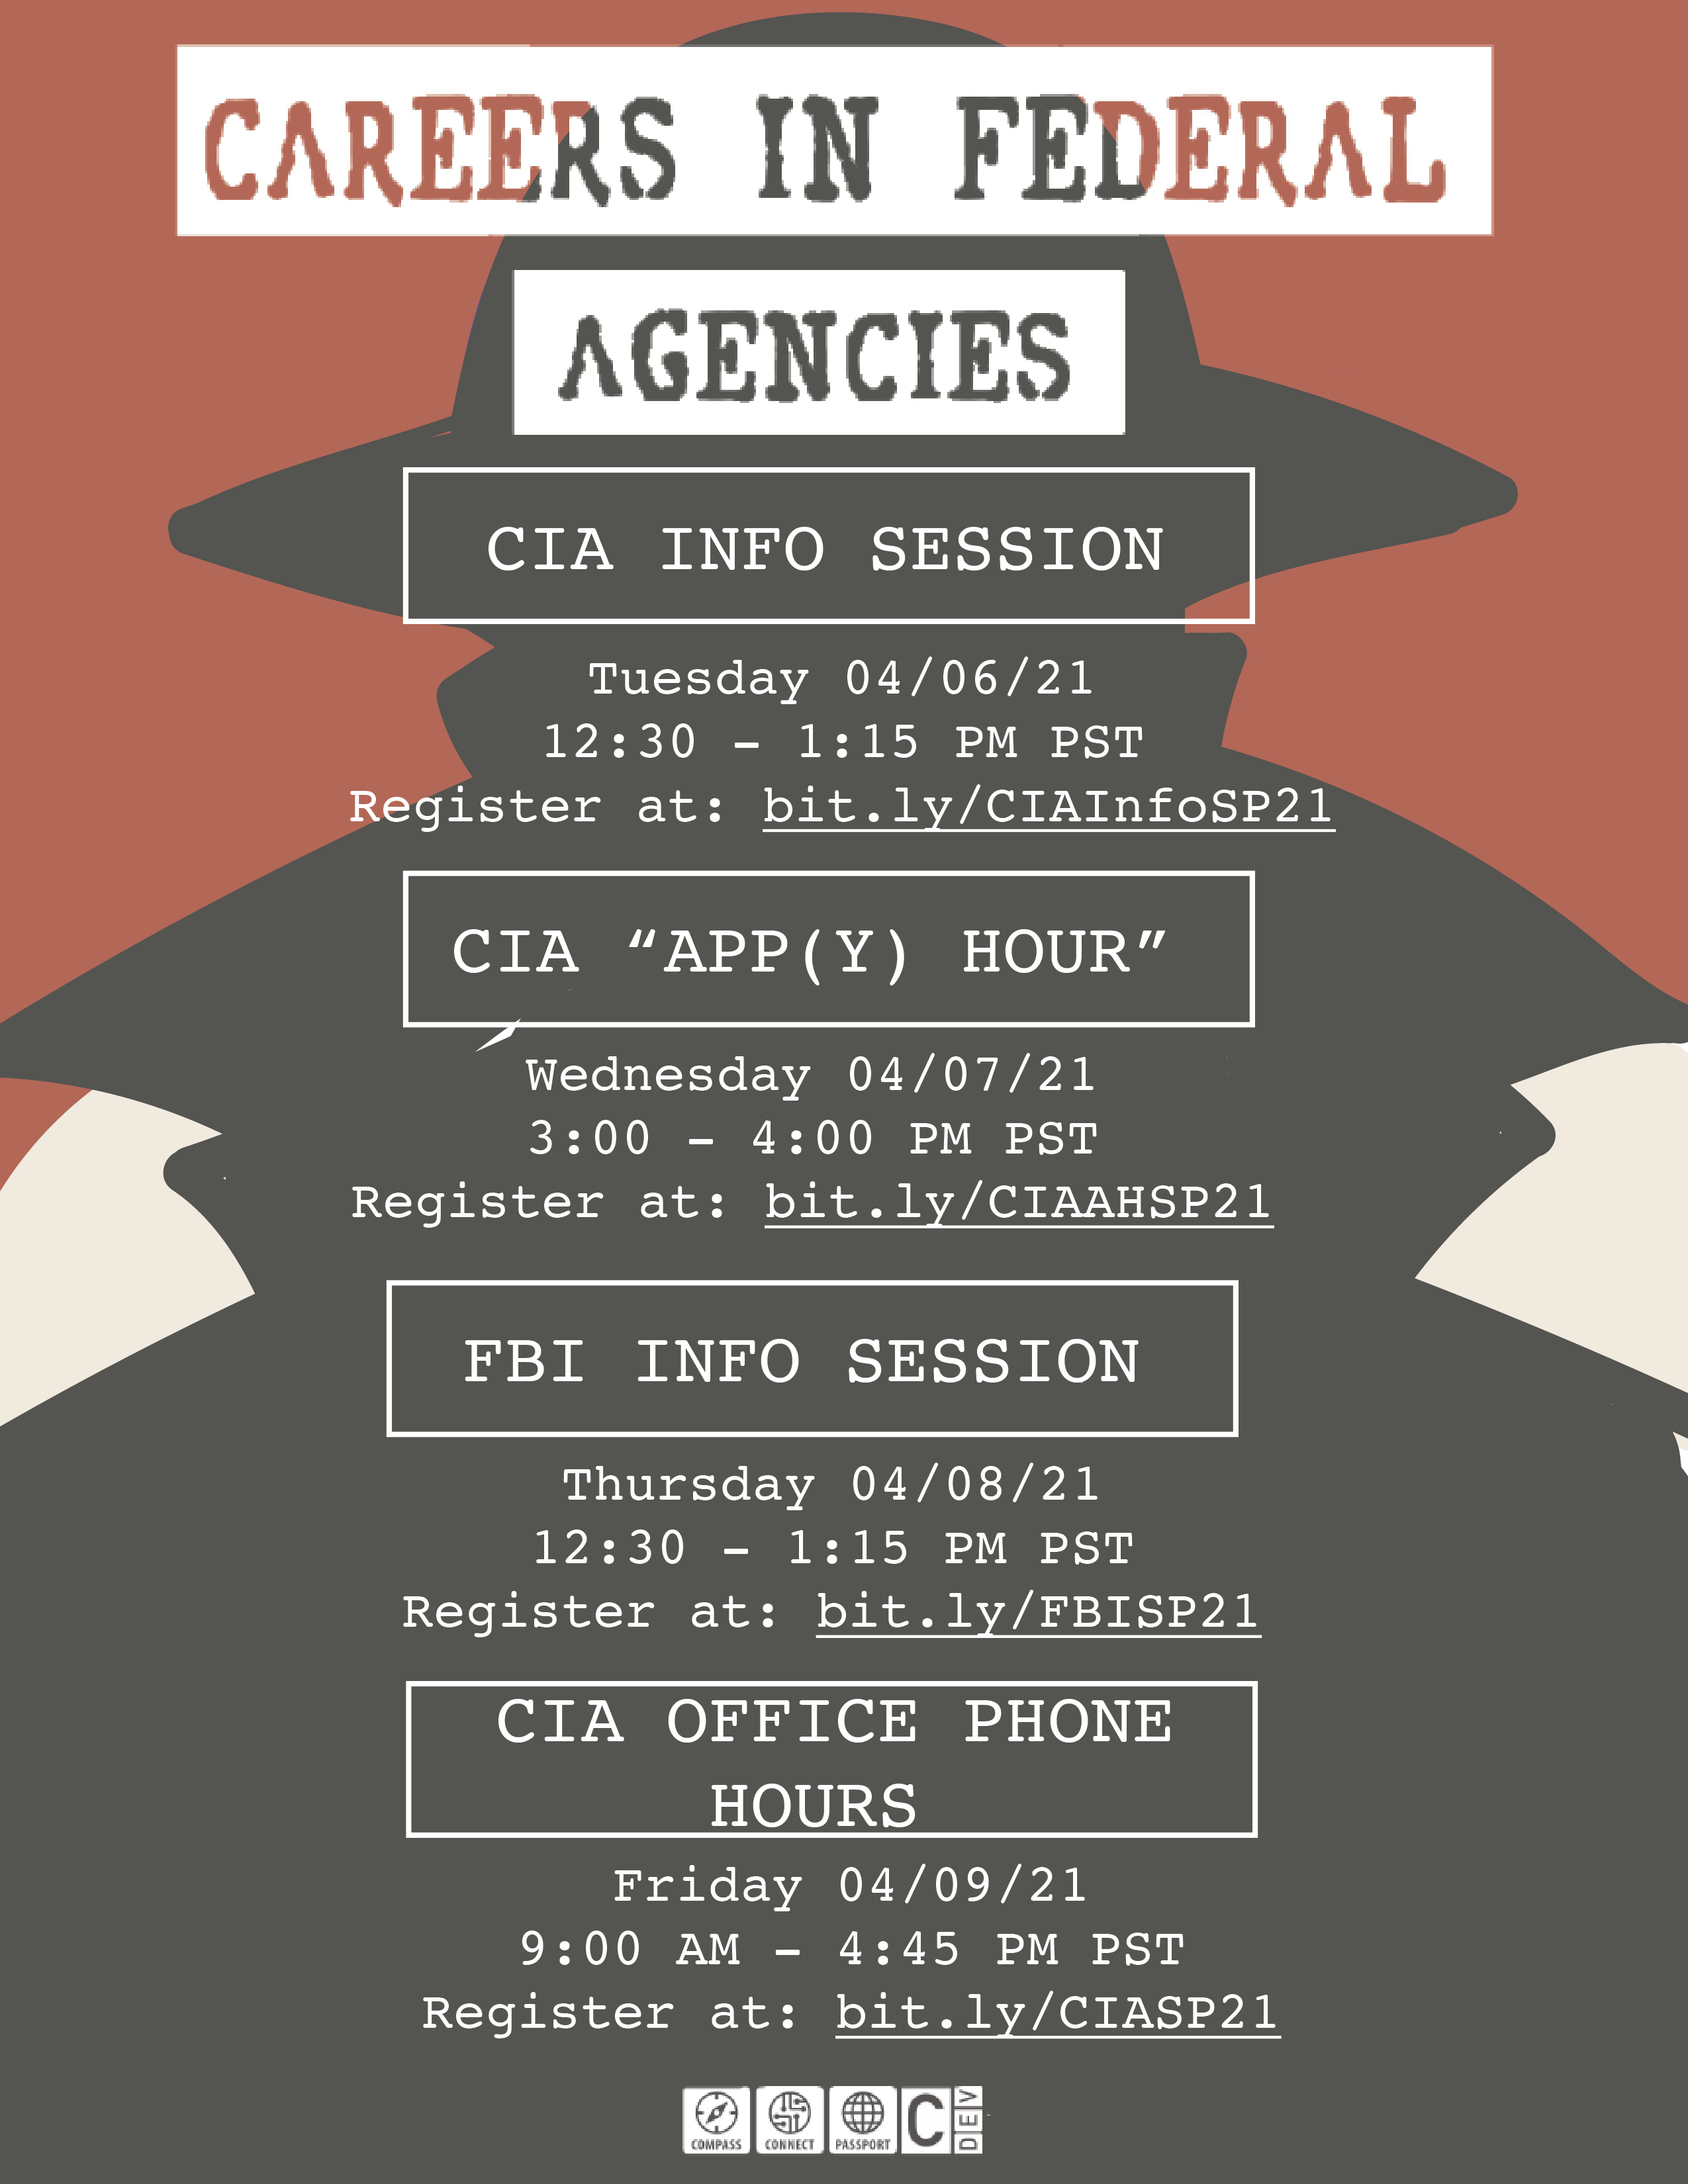 Careers in Federal Agencies Event Flyer